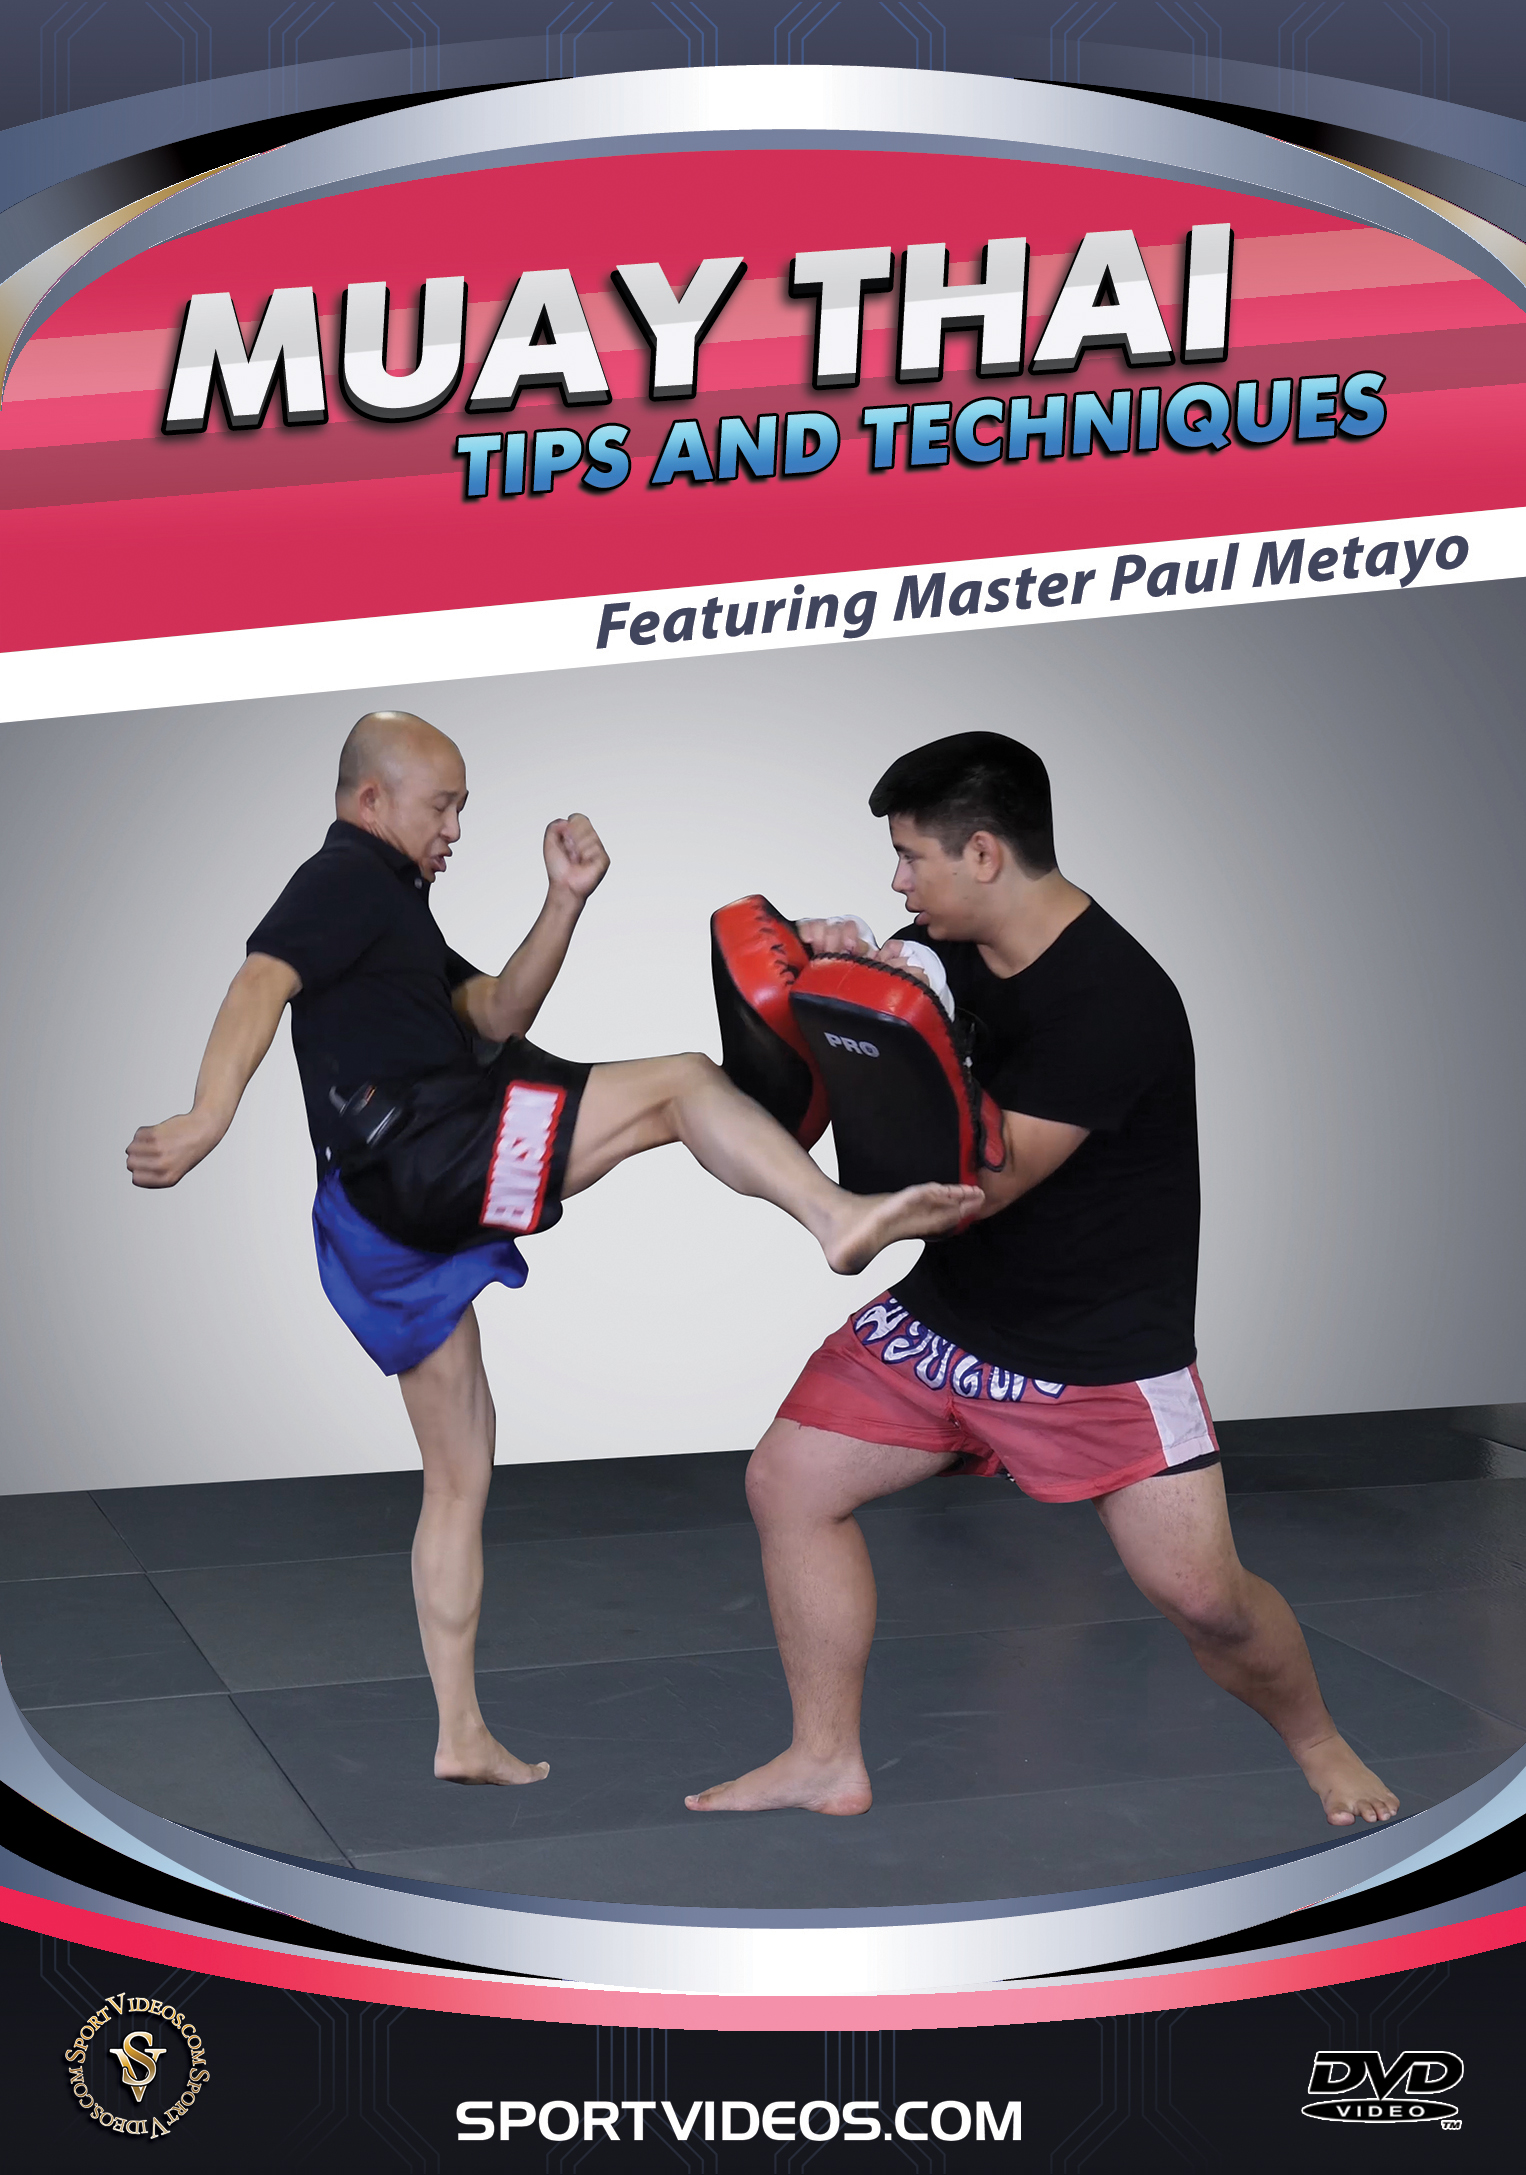 Muay Thai Tips and Techniques DVD or Download